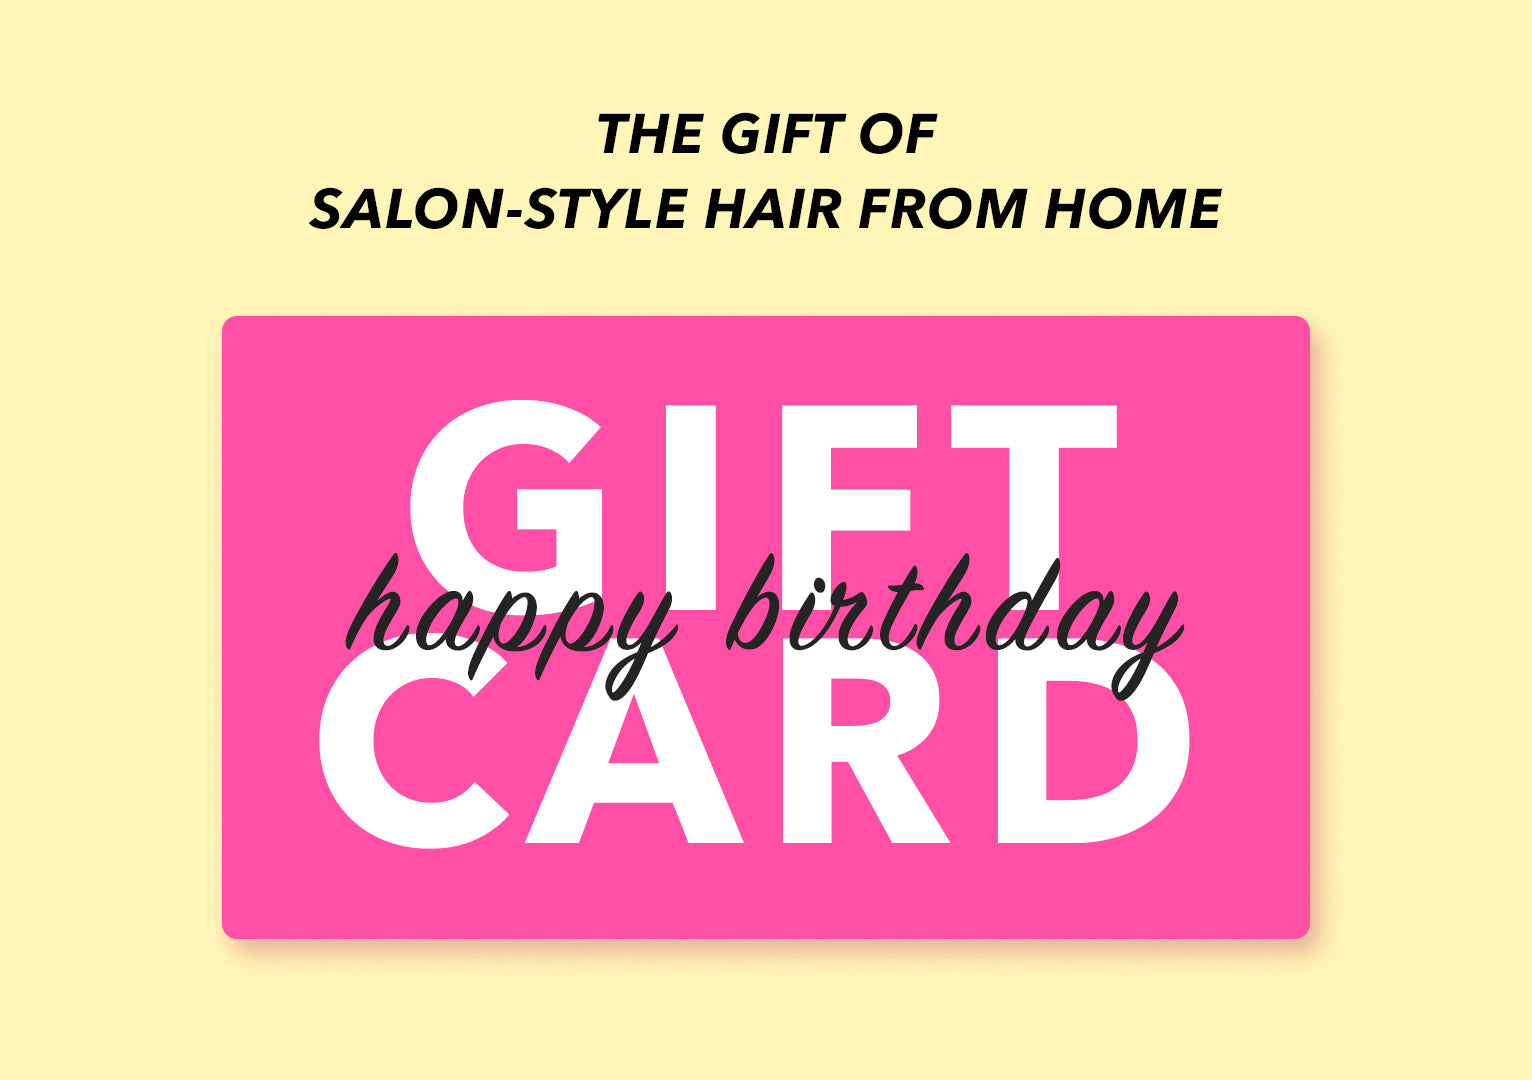 The gift of salon-style hair from home - happy birthday gift card